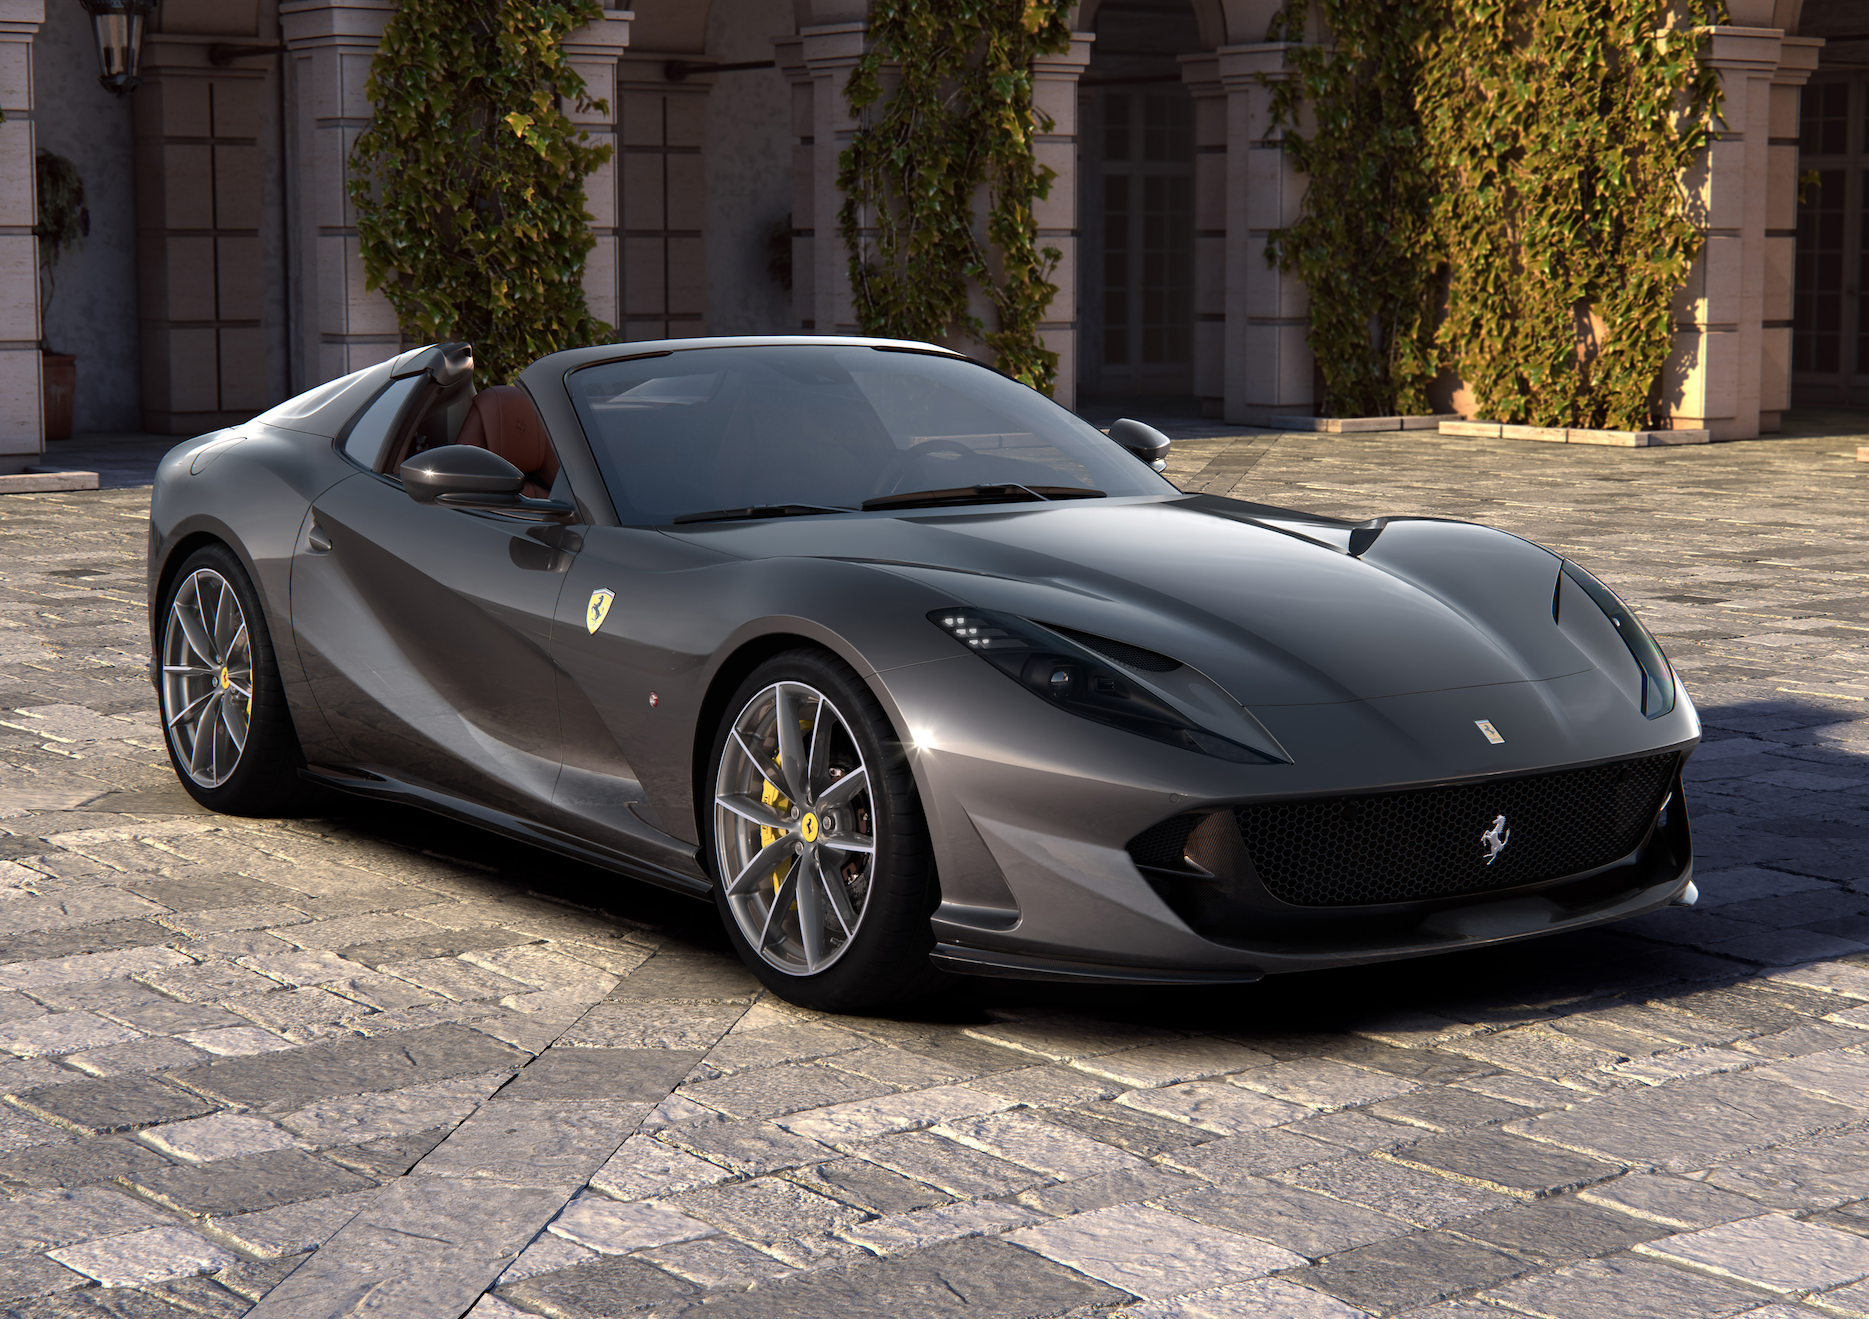 The Ferrari 812 GTS Lets You Hear That Glorious 789-HP V-12 Even Better